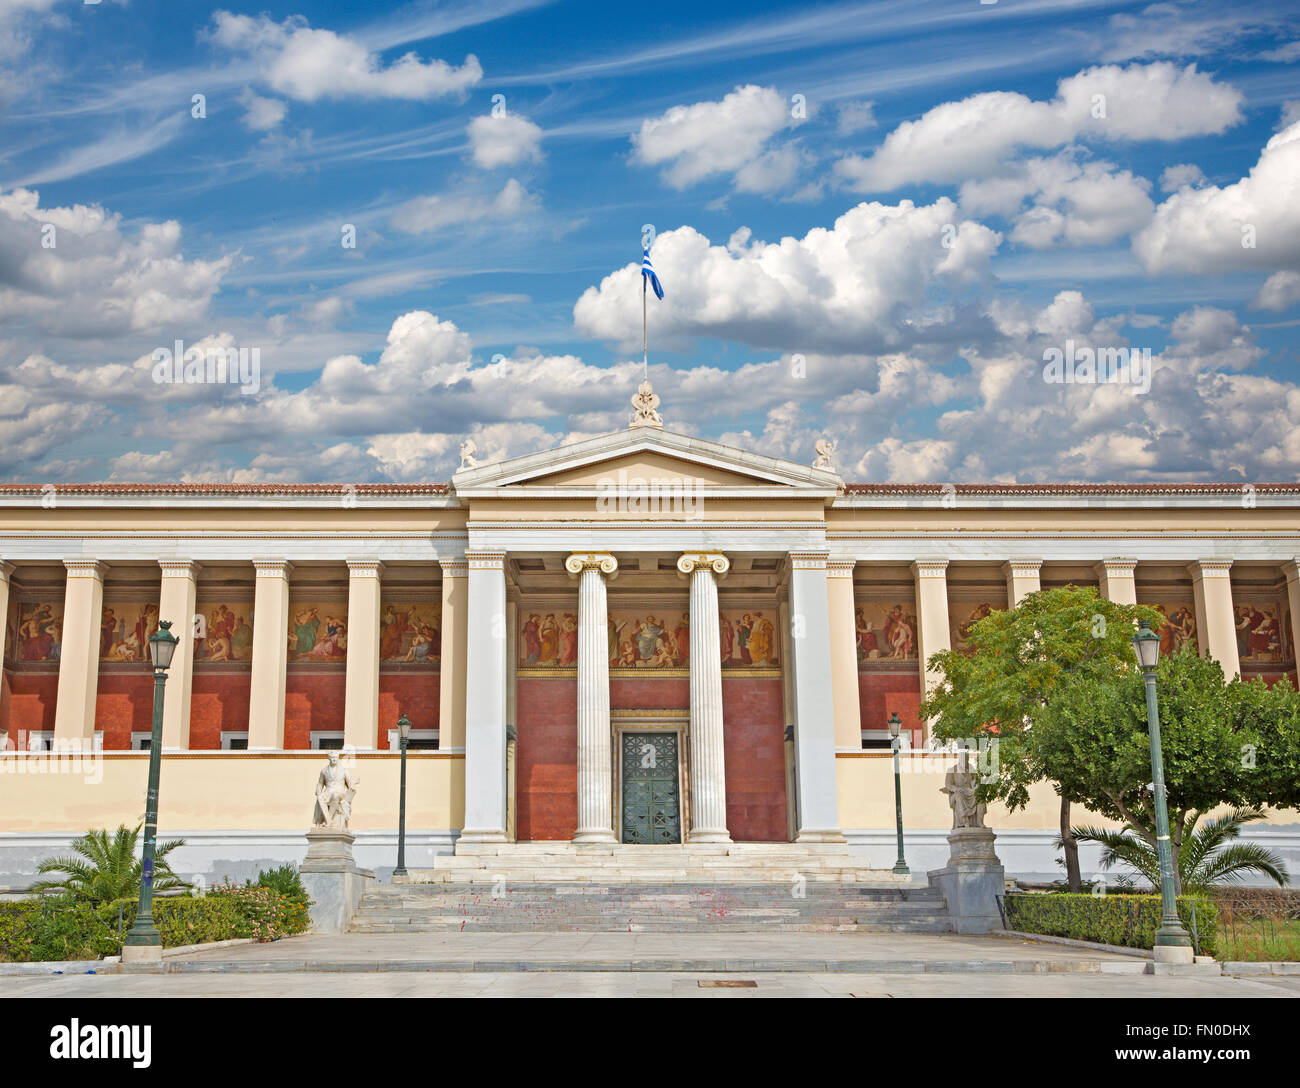 Athens - The building of National and Kapodistrian University of Athens - Stock Image